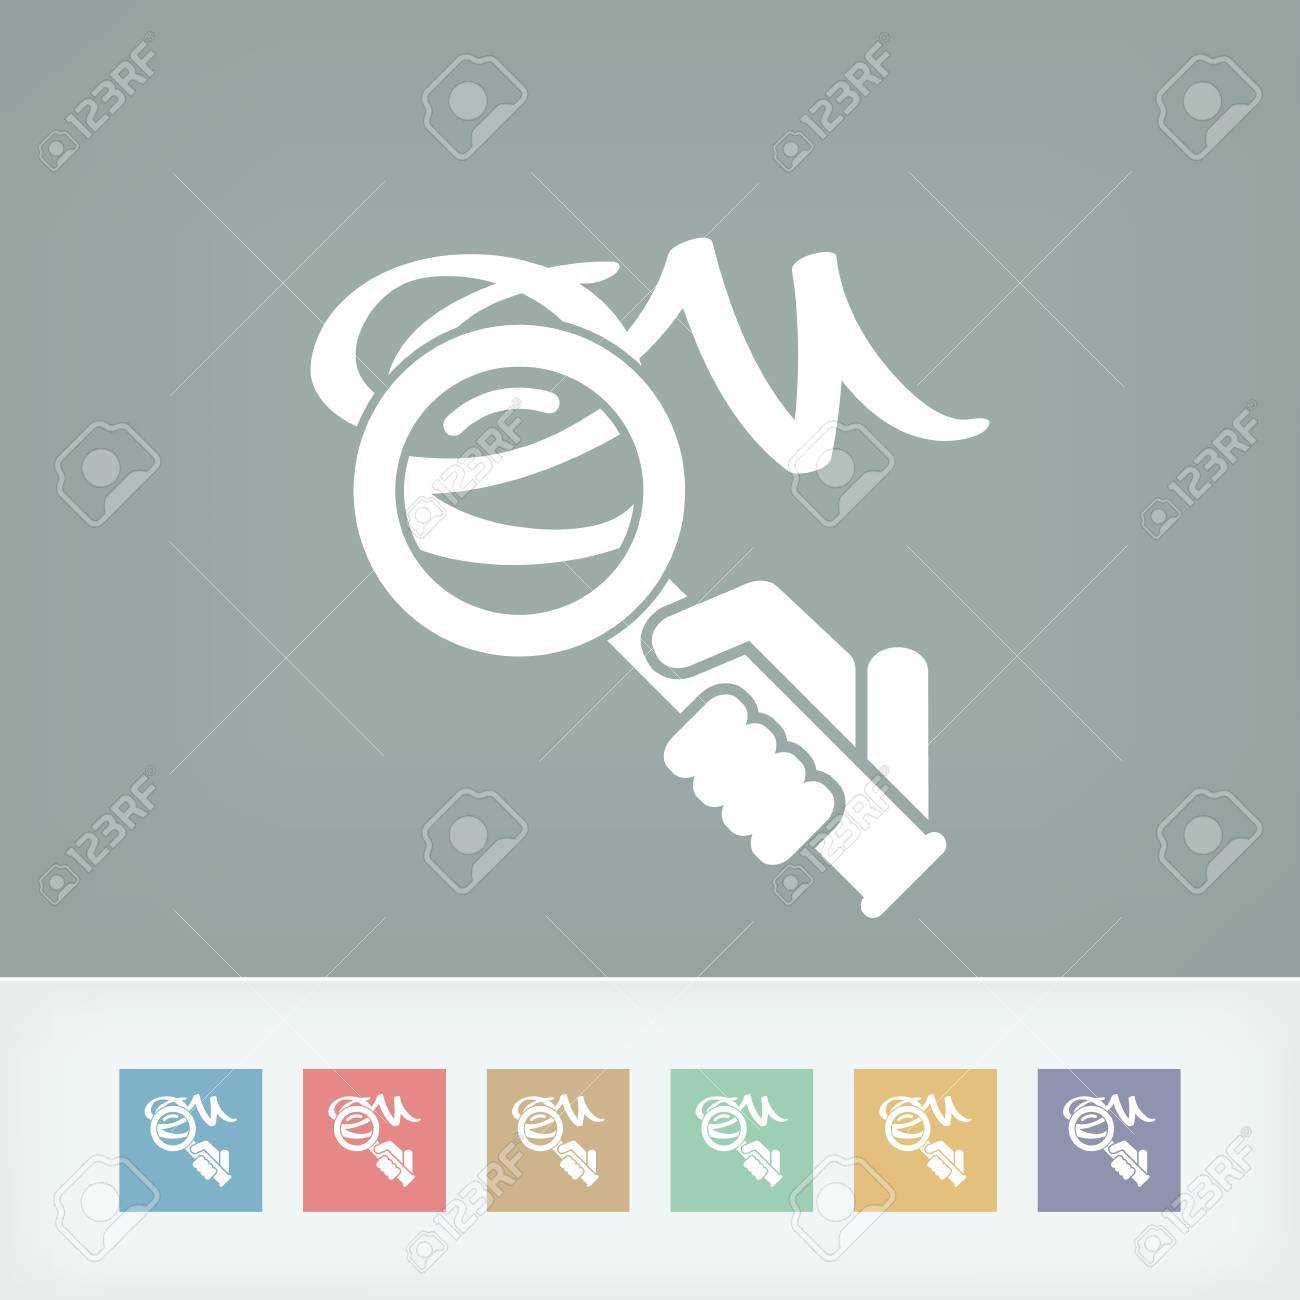 Verification of calligraphy icon Stock Vector - 27151885